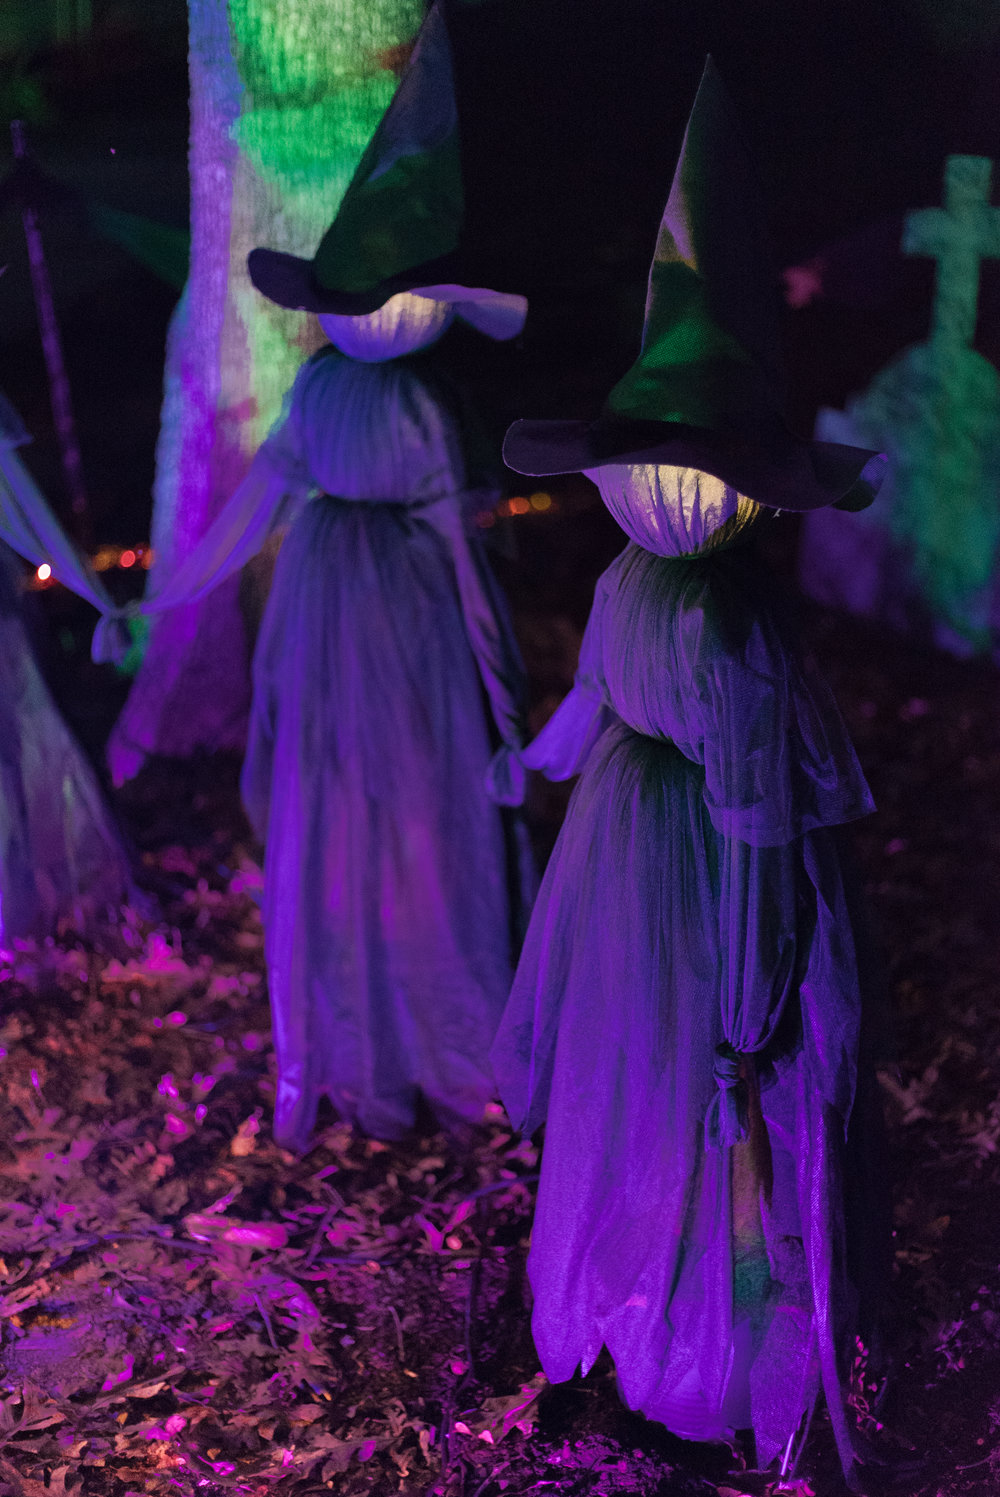 The glowing heads are just the right amount of spooky!